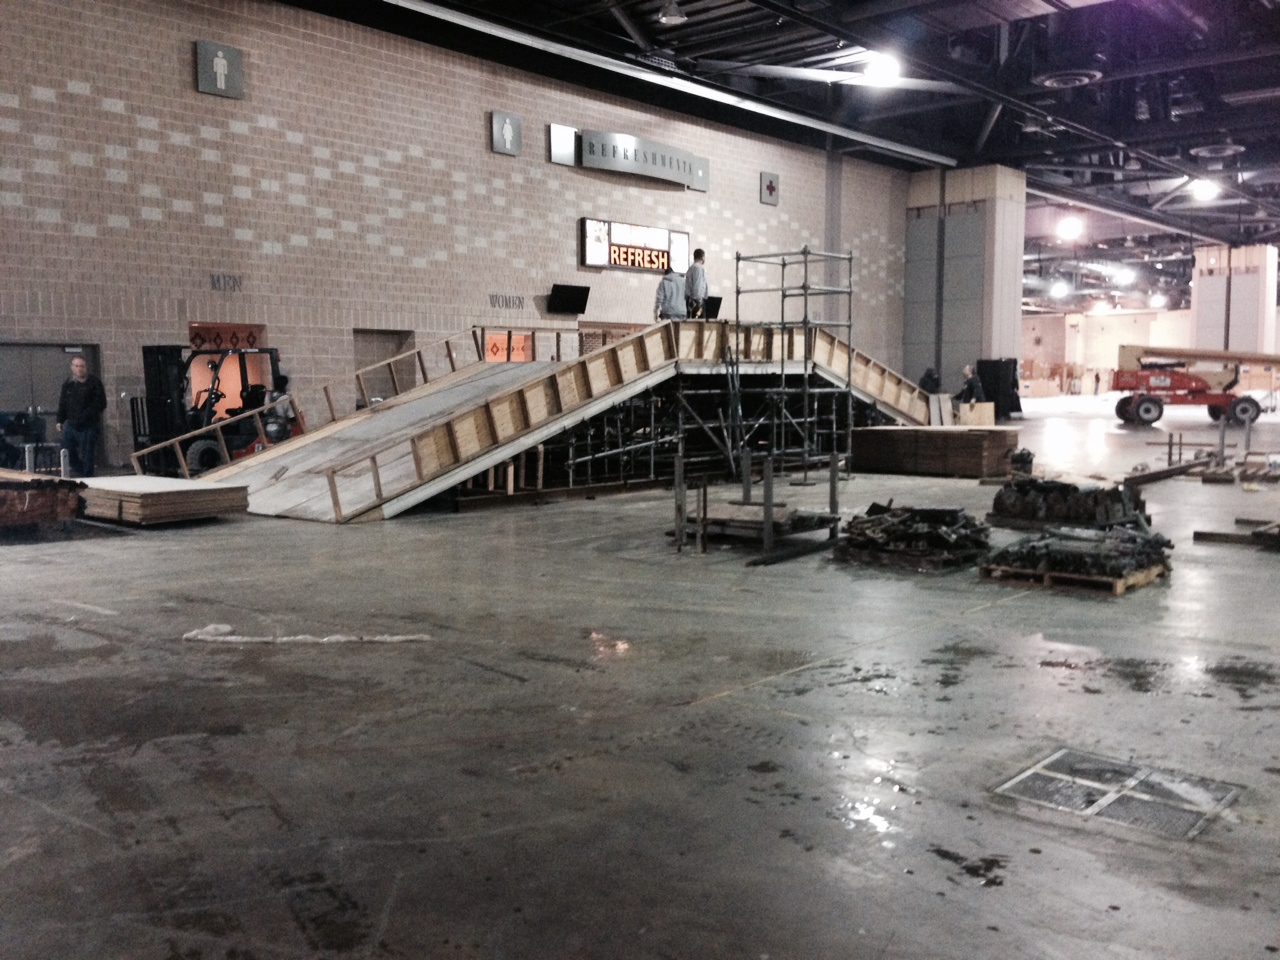 Superior scaffold, (215) 743-2200, scaffold rental, scaffolding rental, suspended, PA, Philadelphia, philly, phila, rent, ladders, building materials, equipment rental, de, nj, md, nyc, auto, toyota, cars, trucks, auto, show